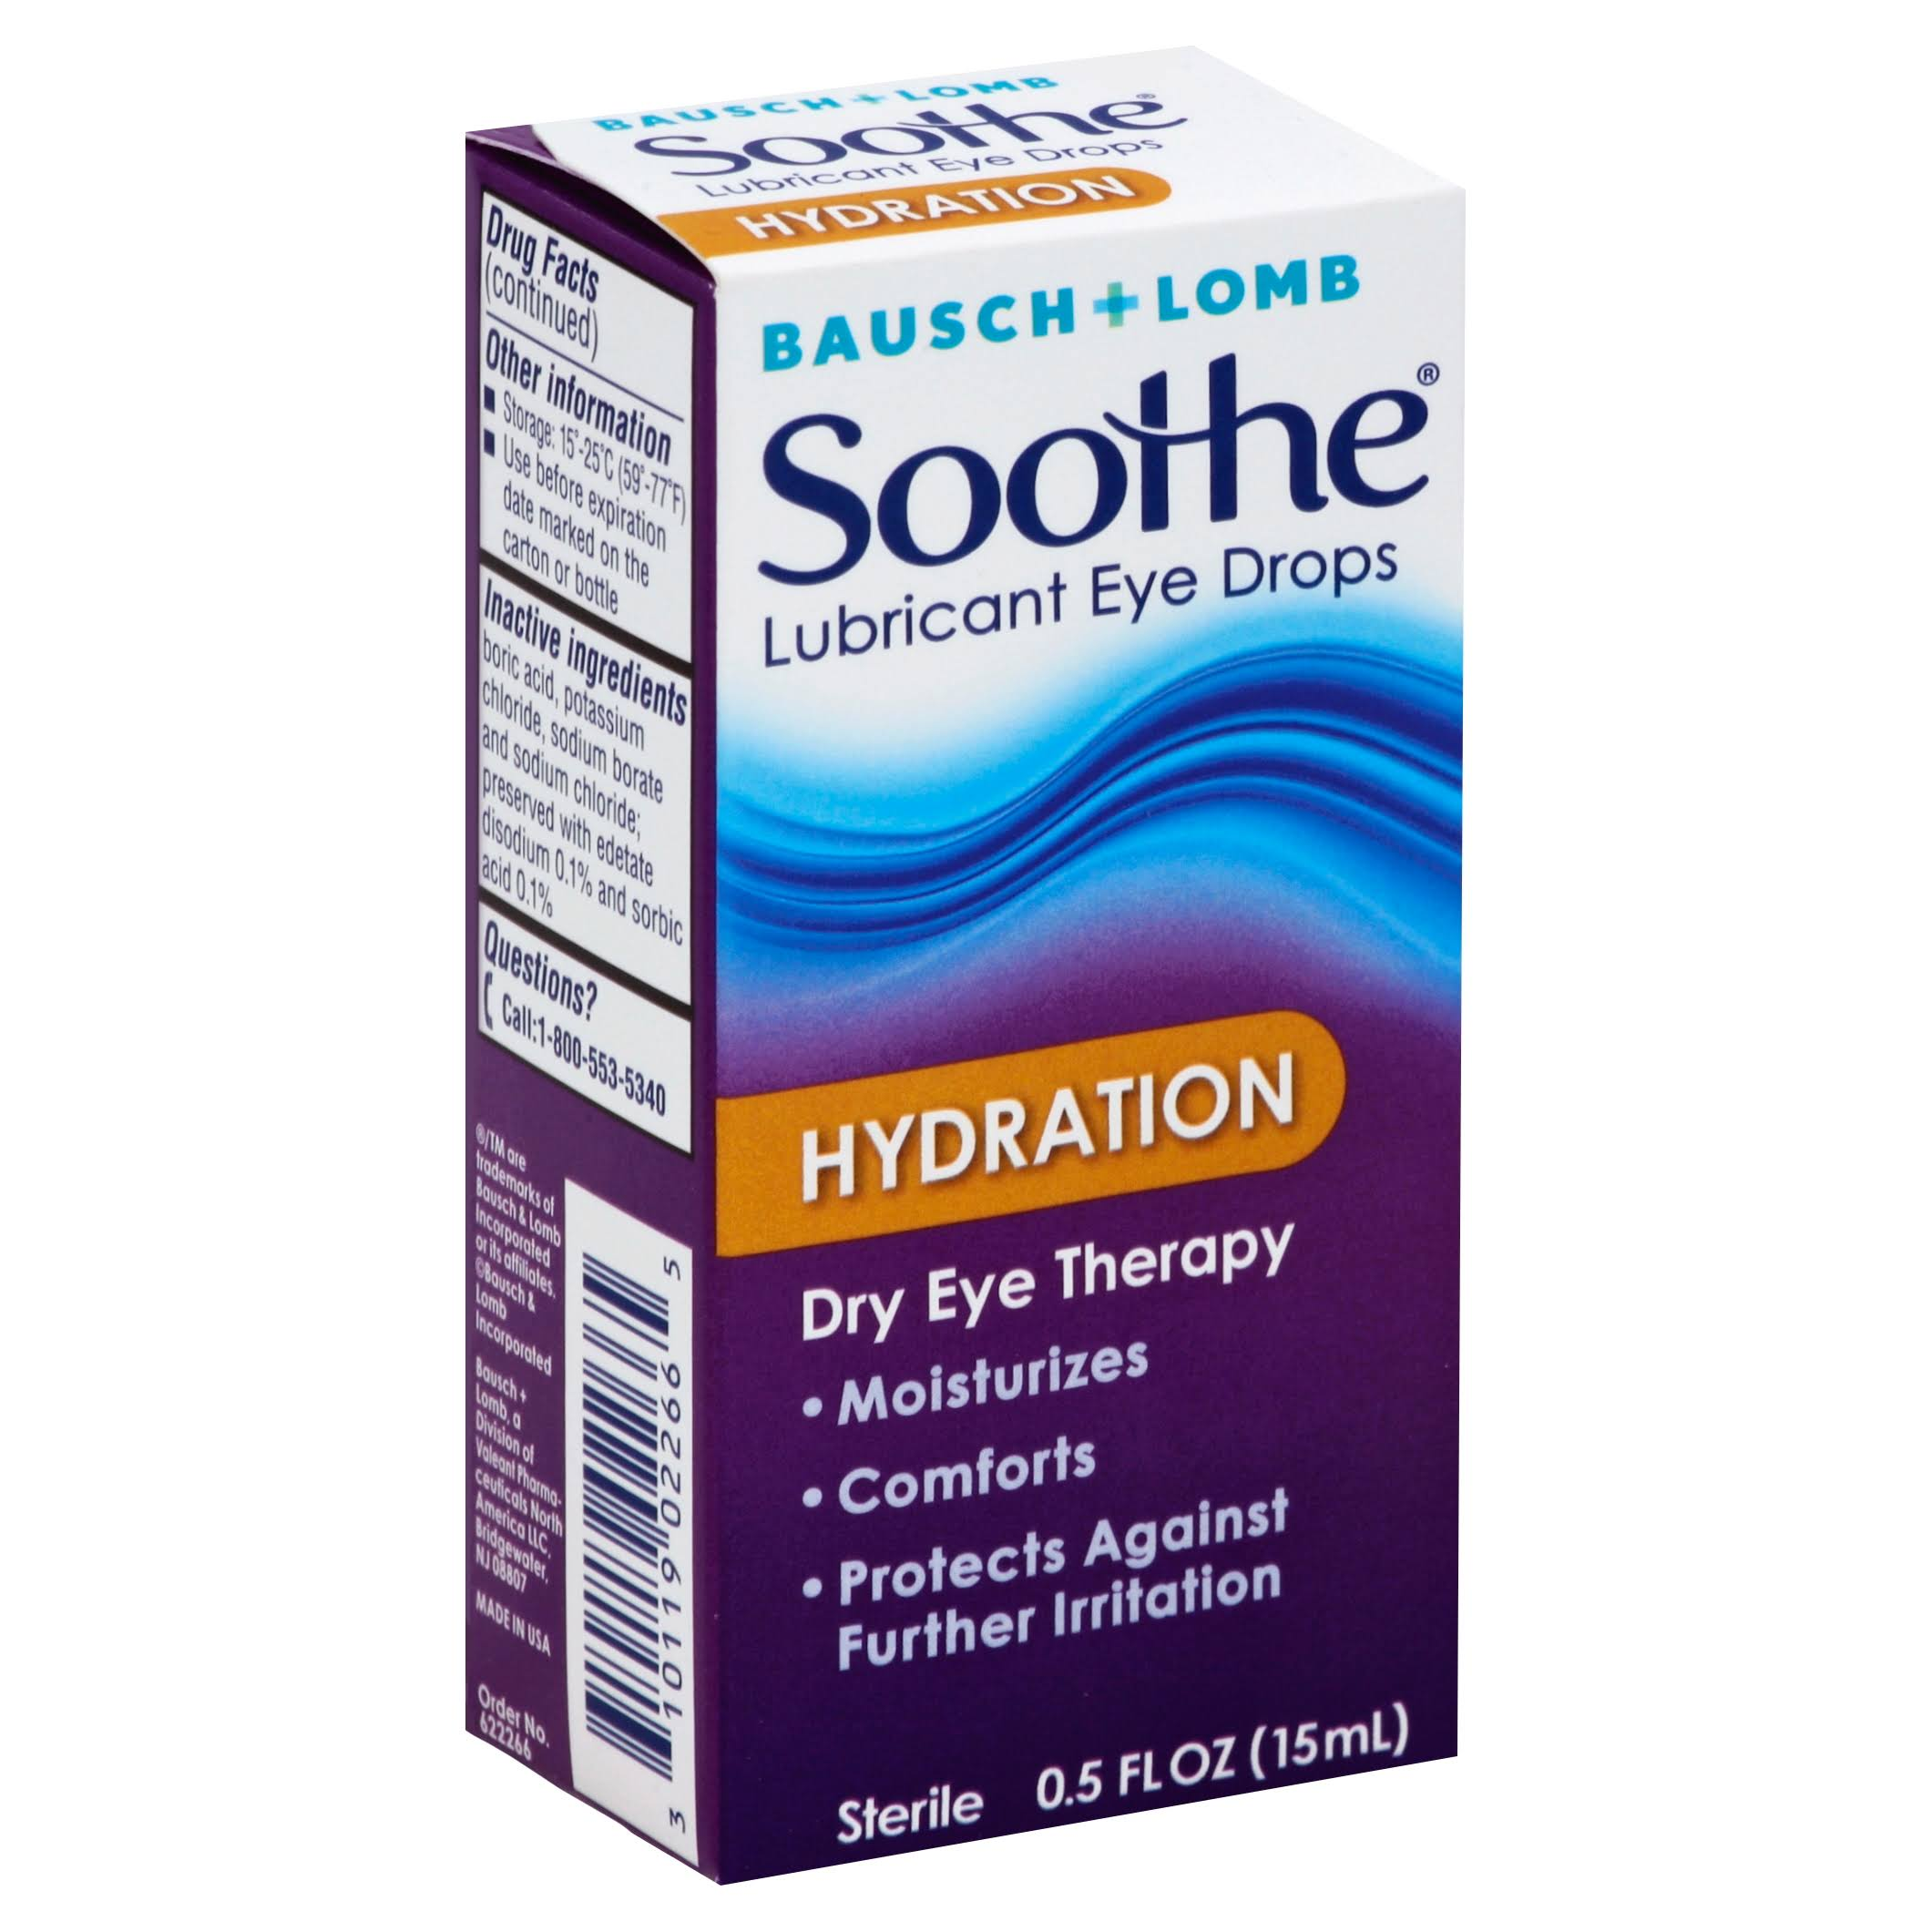 Soothe Lubricant Eye Drops - Hydration, 0.5oz